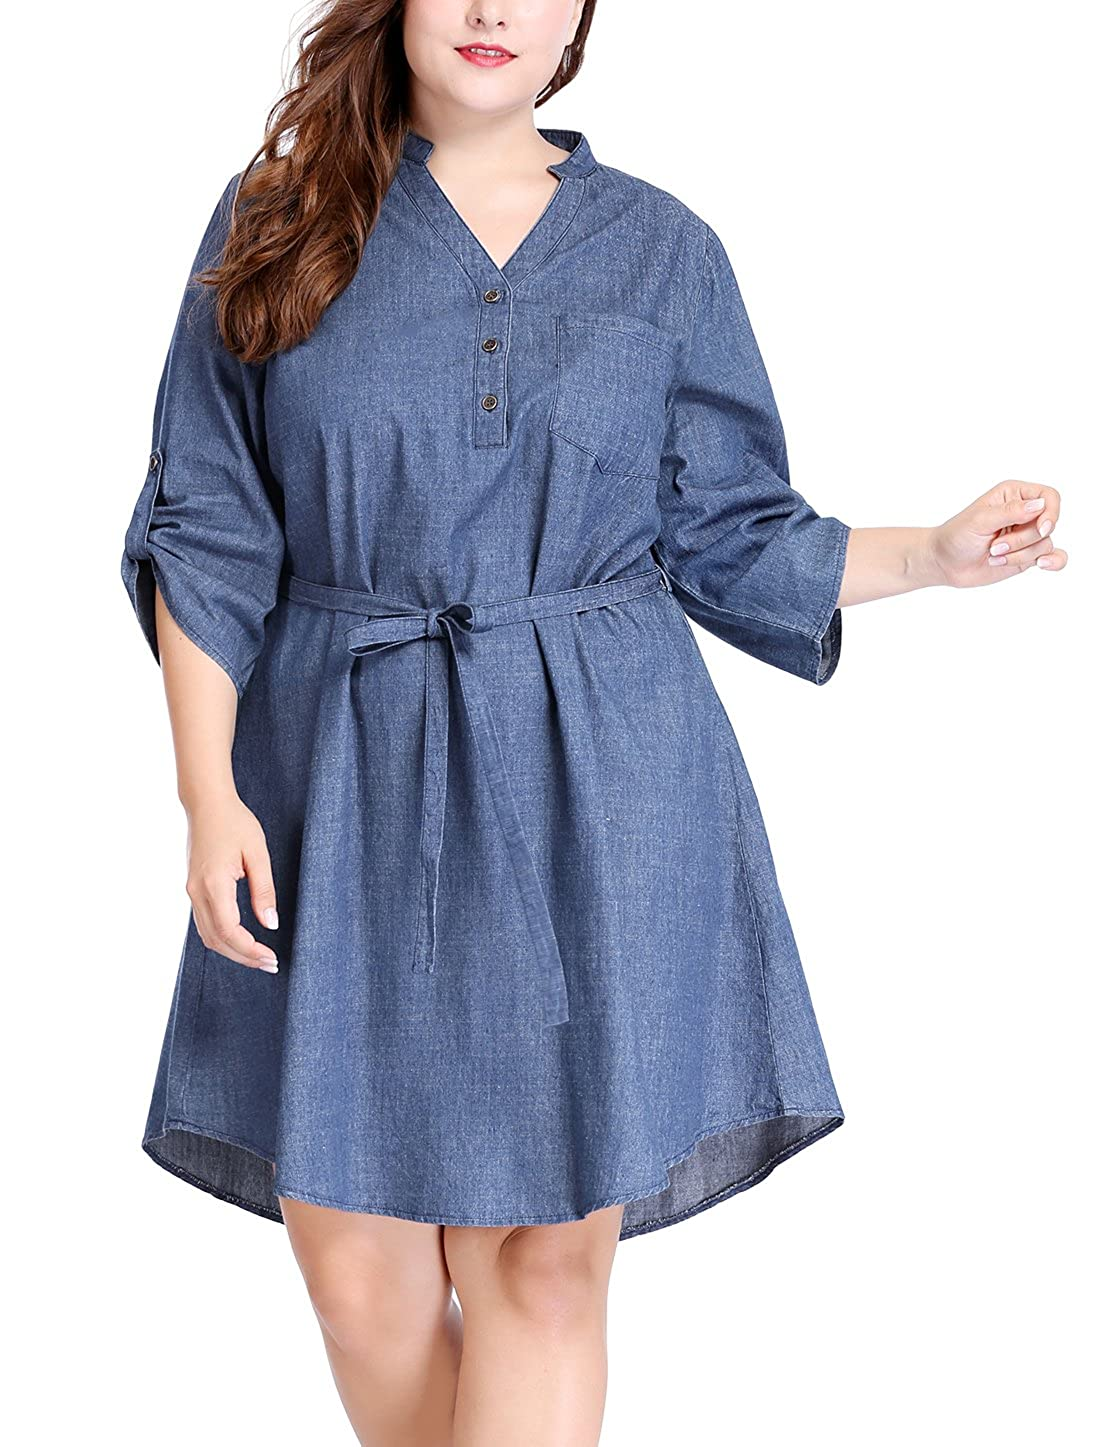 uxcell Women's Plus Size Roll up Sleeves Above Knee Belted Denim Dress g16120100ux0011